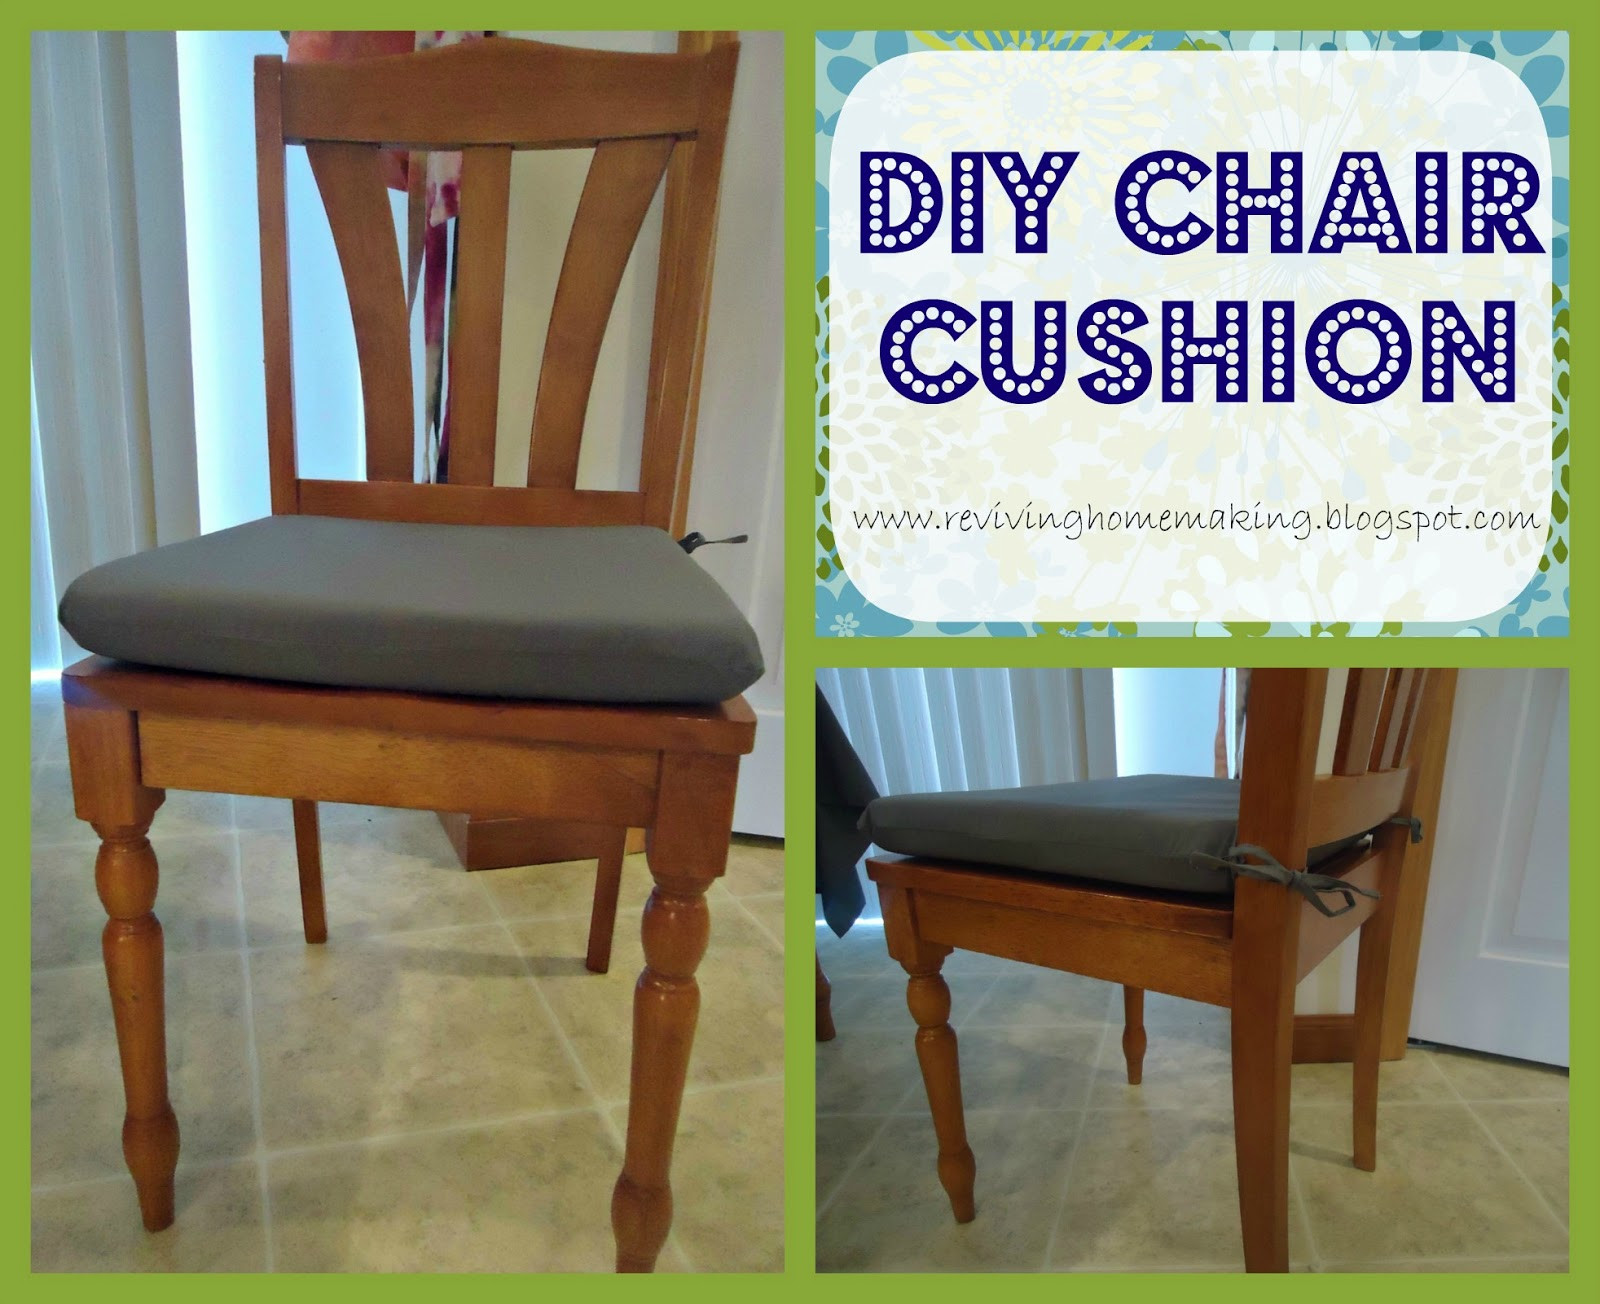 Best ideas about DIY Chair Cushion . Save or Pin Reviving Homemaking DIY Chair Cushion Now.